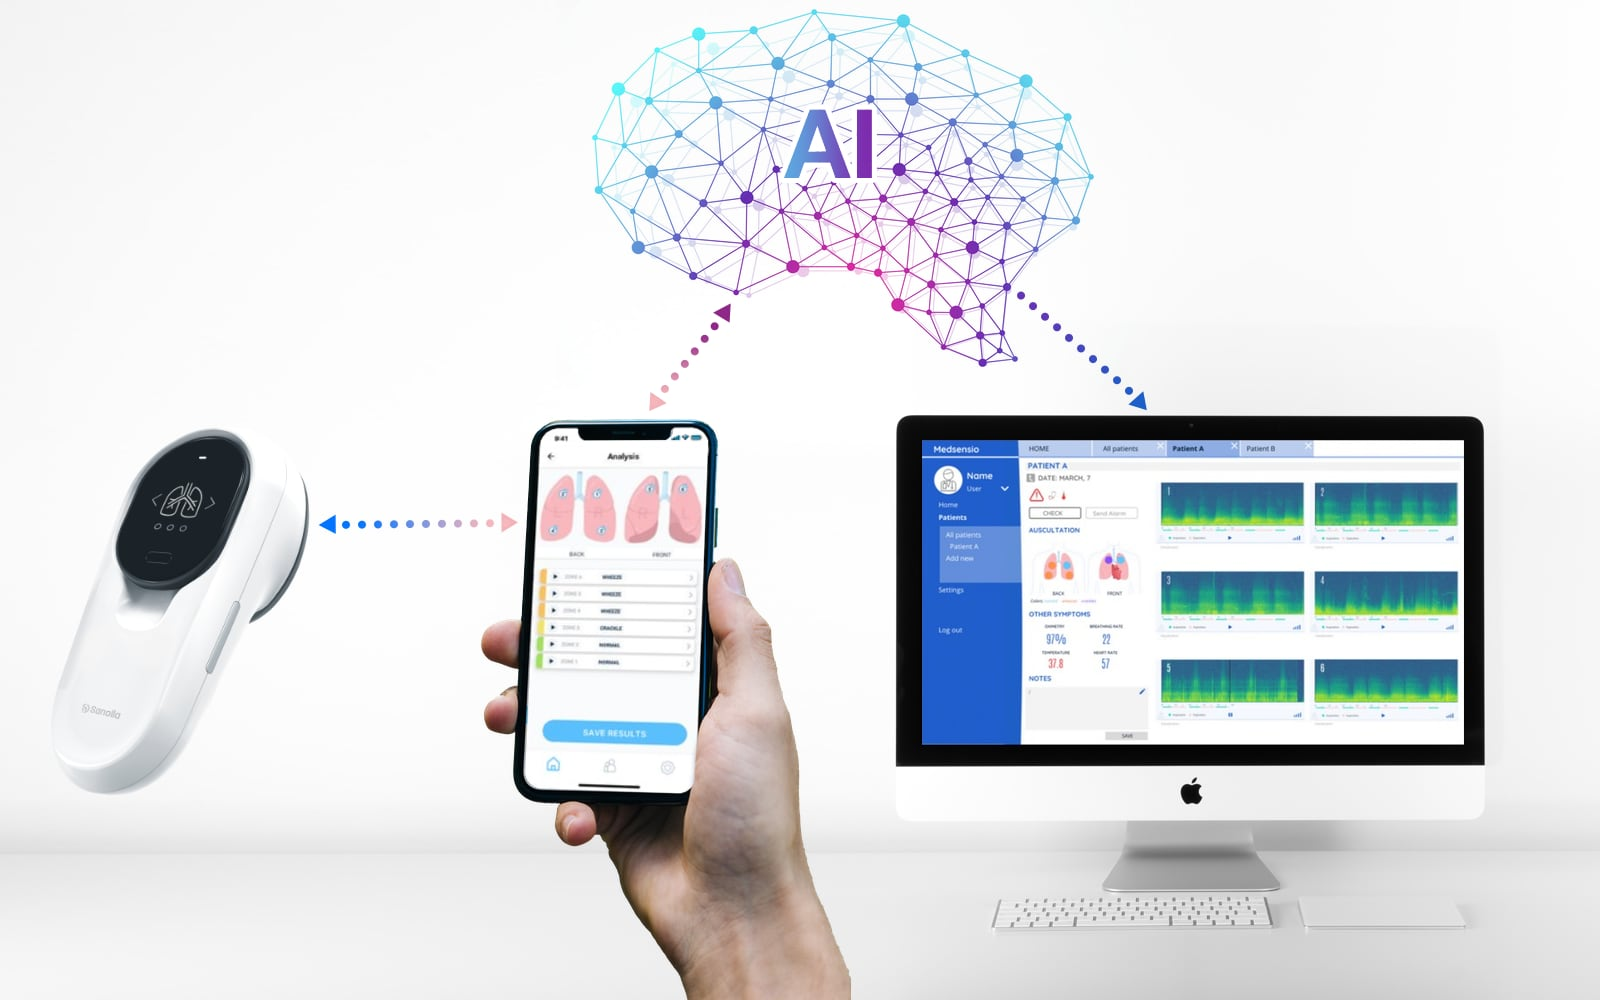 PyXy with smartphone App and Web-interface and cloud-based AI